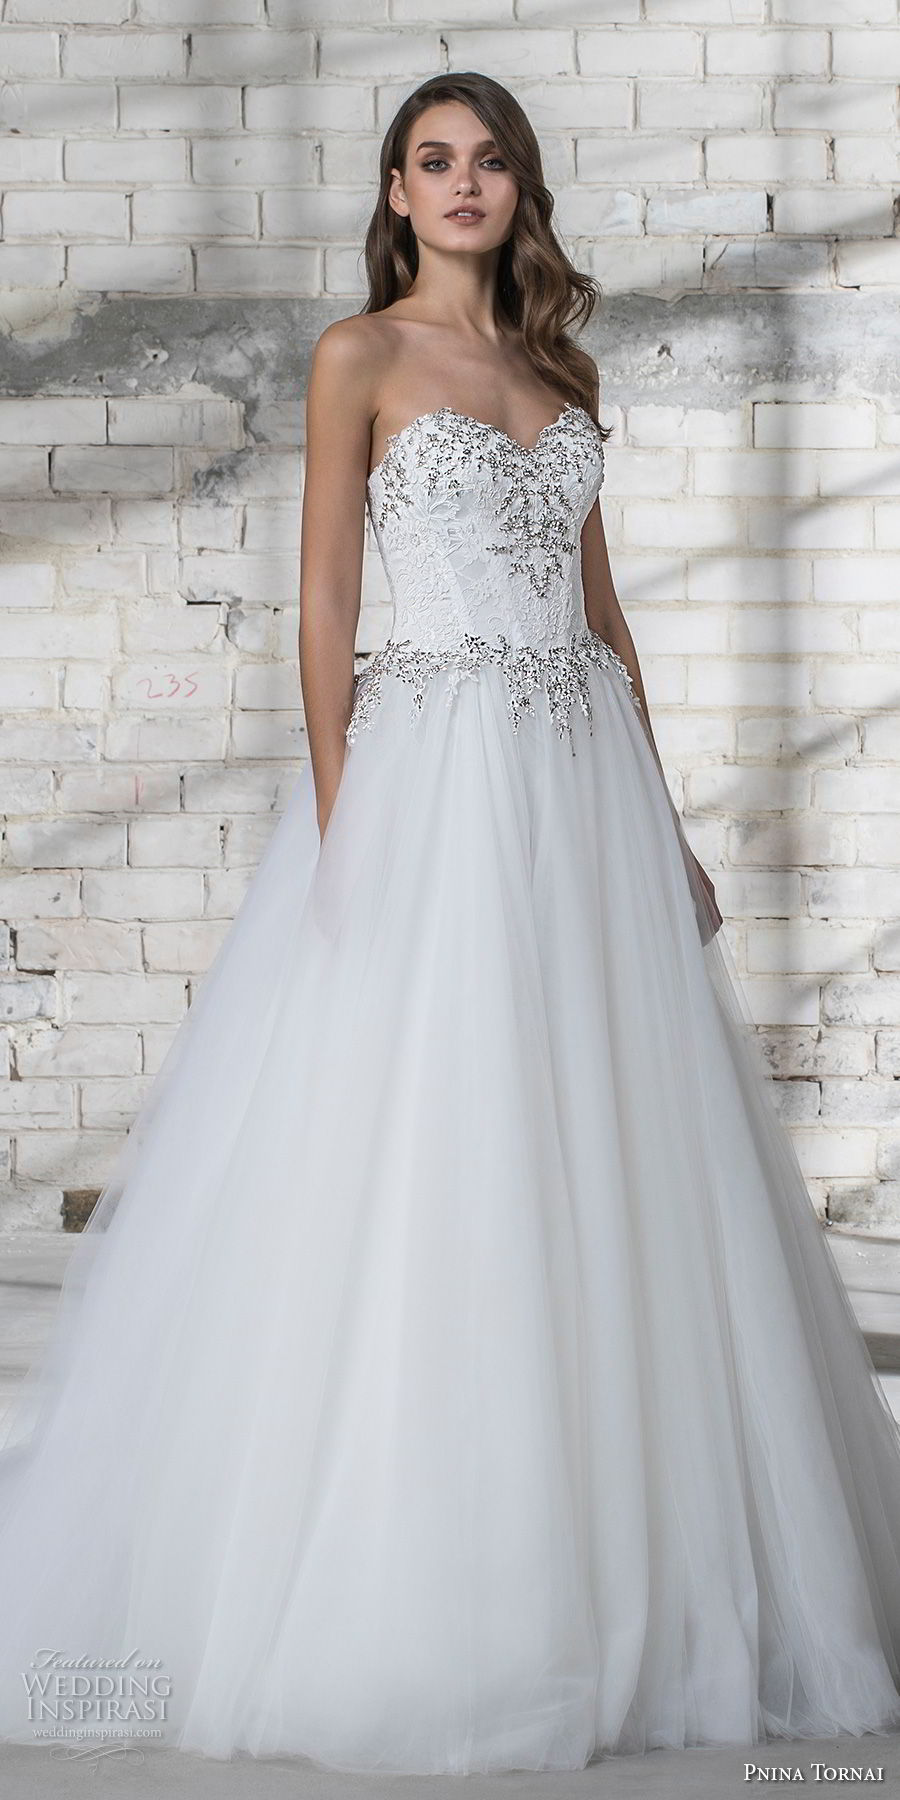 pnina tornai 2019 love bridal strapless sweetheart neckline heavily embellished bodice bustier tulle skirt romantic a line wedding dress chapel train (5) lv